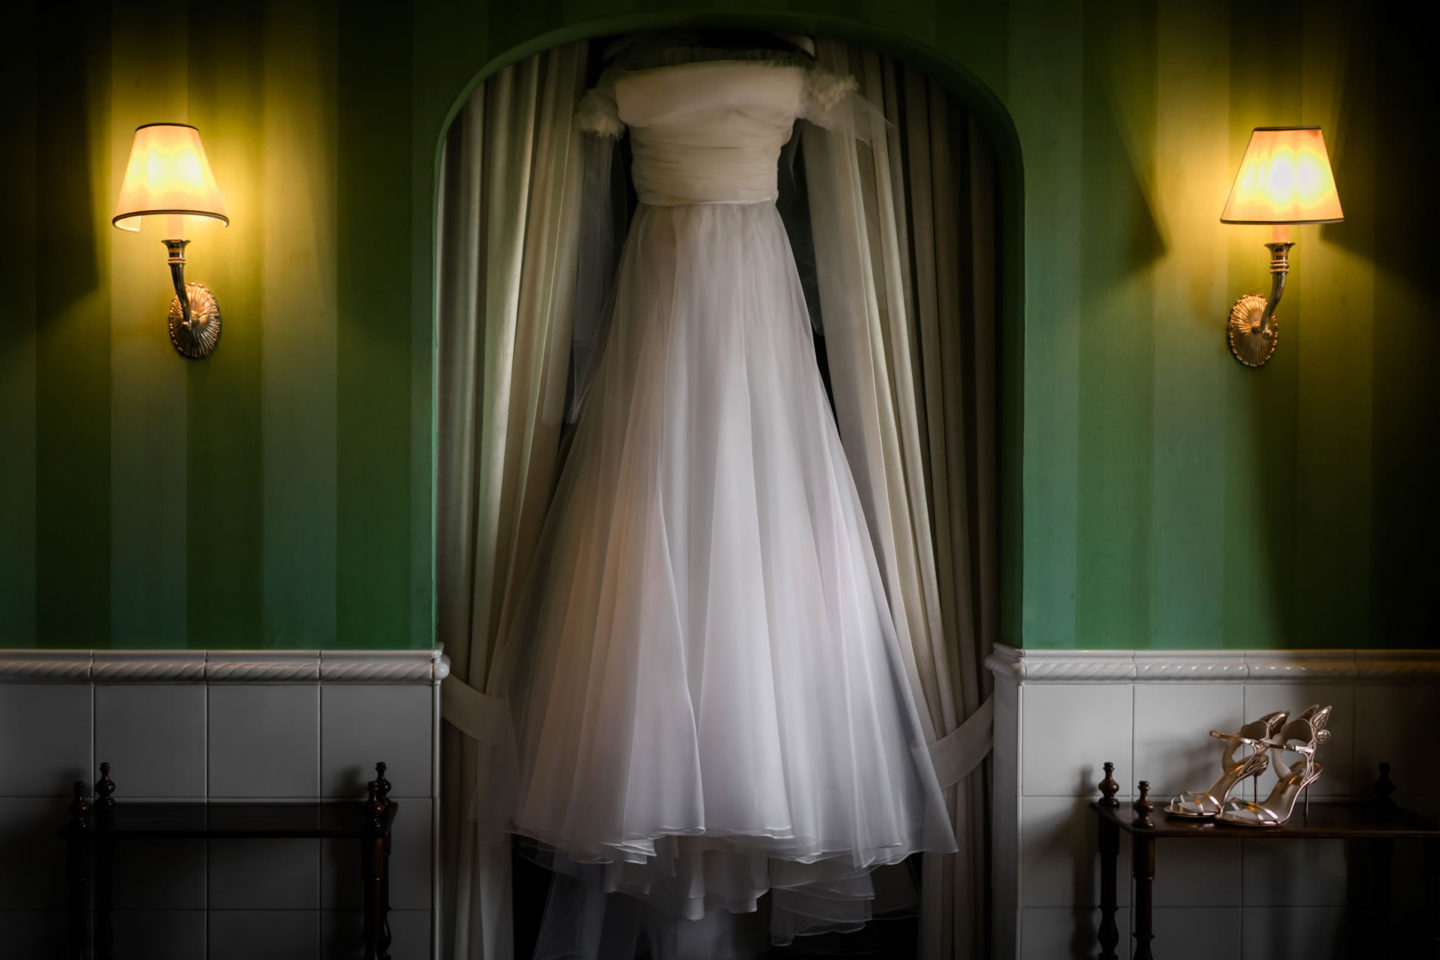 Bride Dress :: Amazing wedding day at Il Borro :: Luxury wedding photography - 0 :: Bride Dress